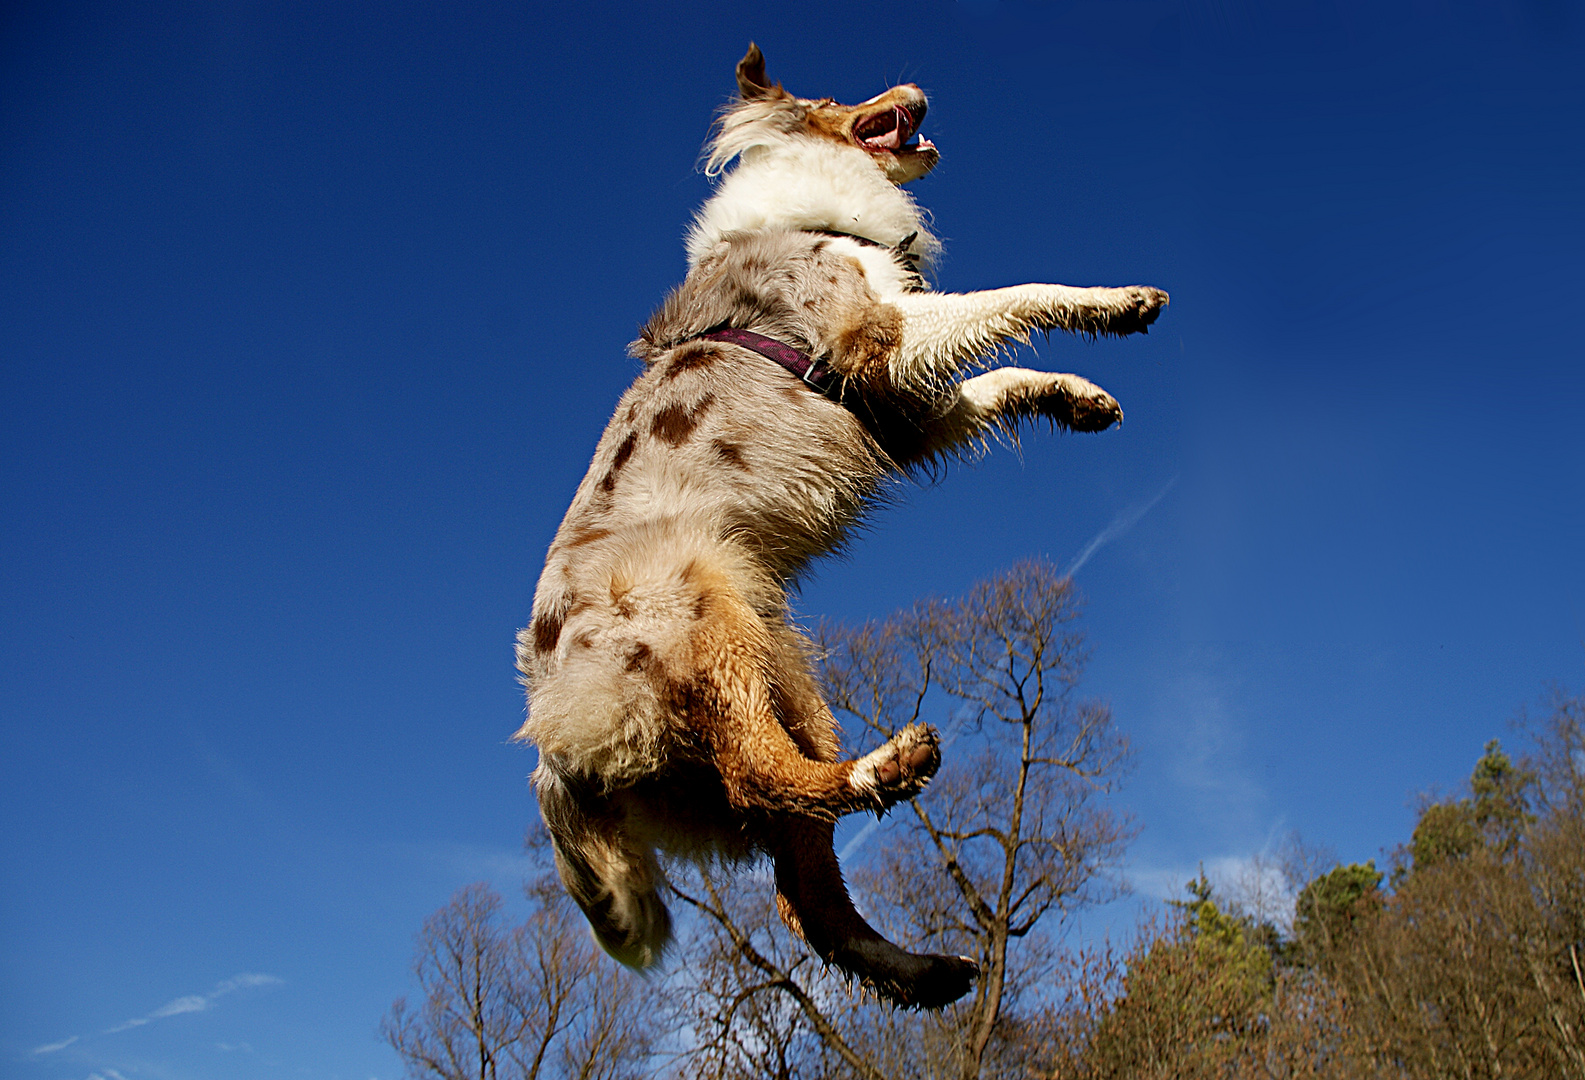 Don't tell me dogs can't fly...